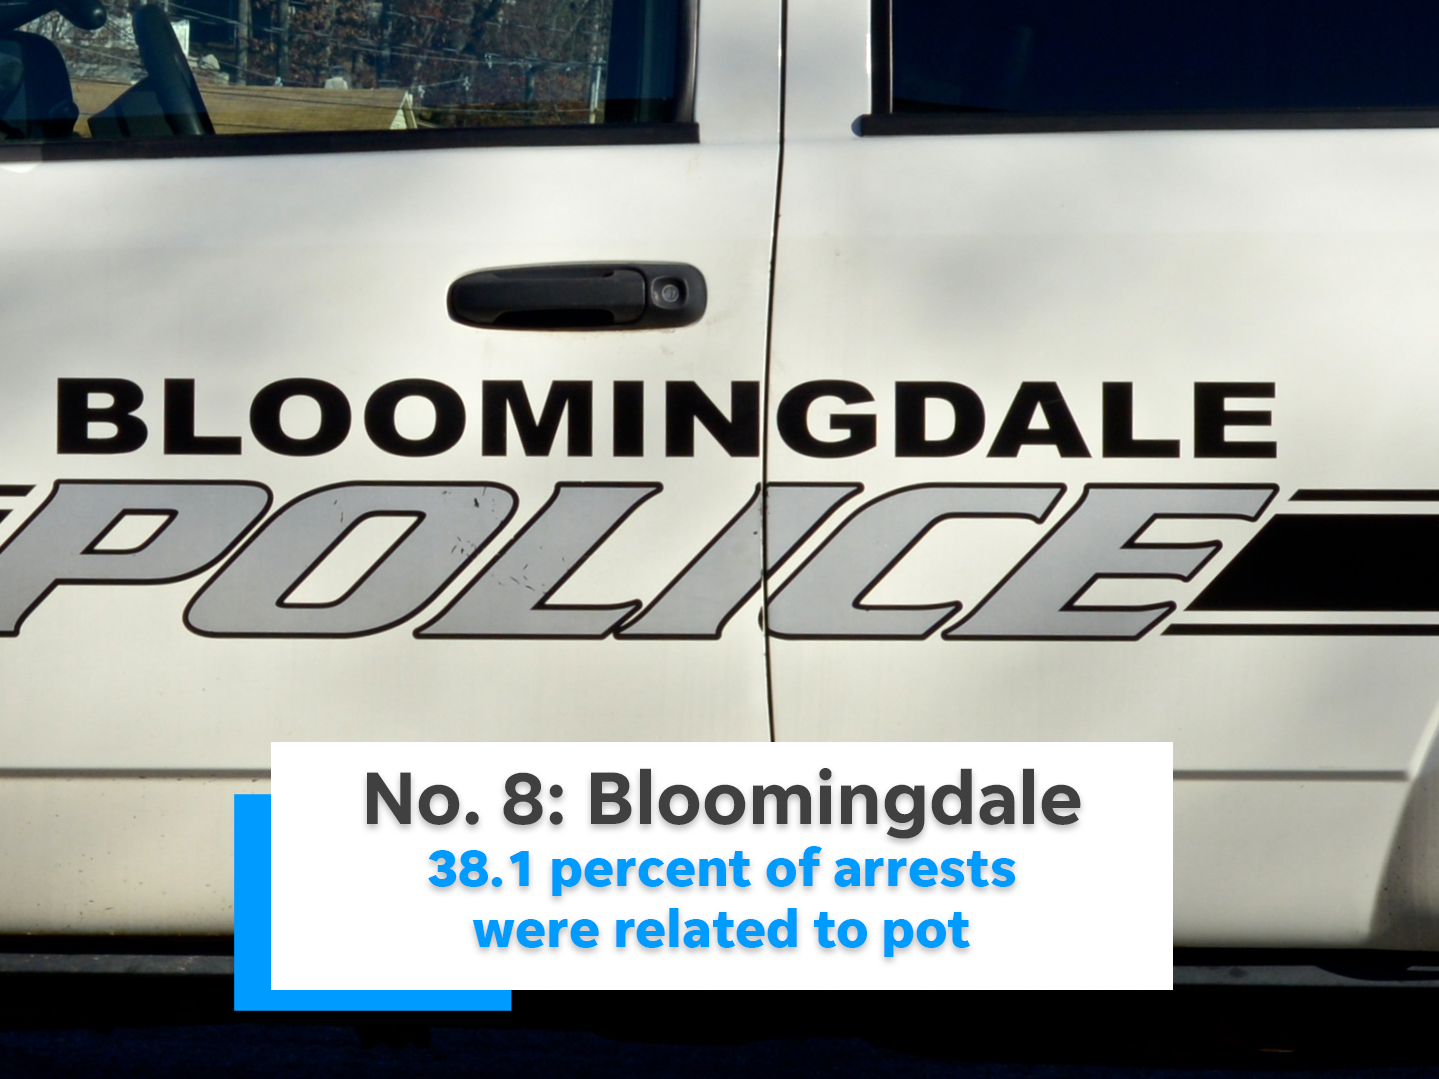 38.1 percent of Bloomingdale's arrests were related to marijuana.